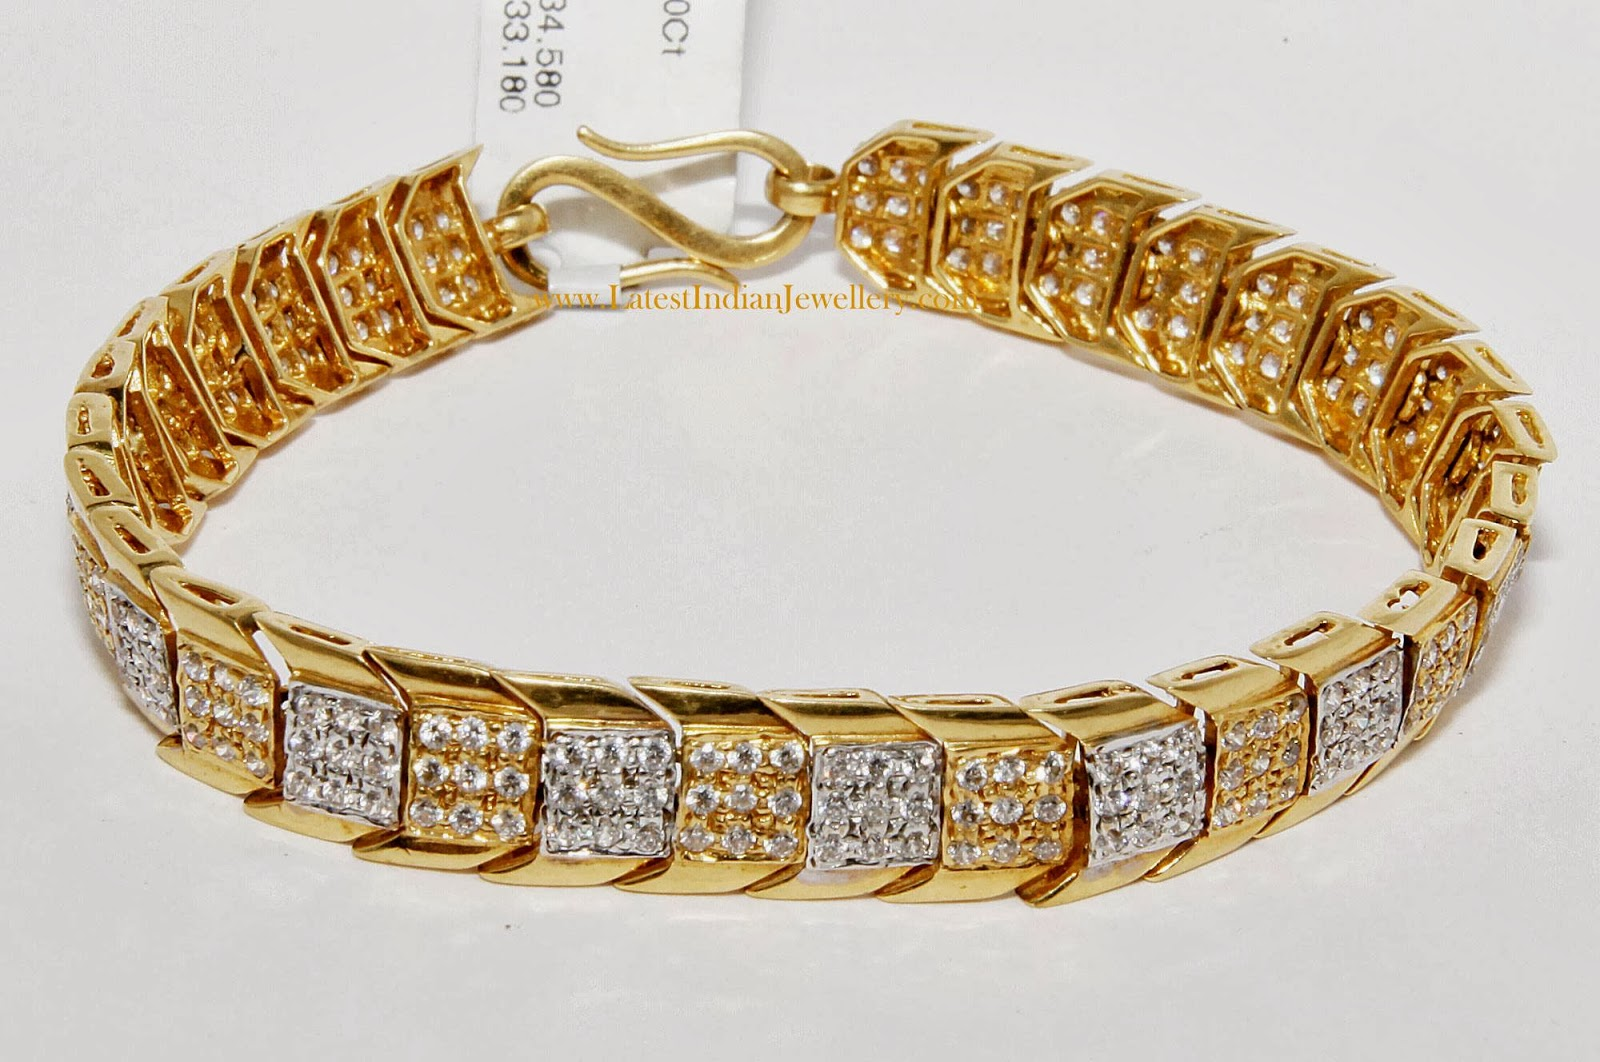 GOLD BRACELETS FOR MEN - Espar Denen